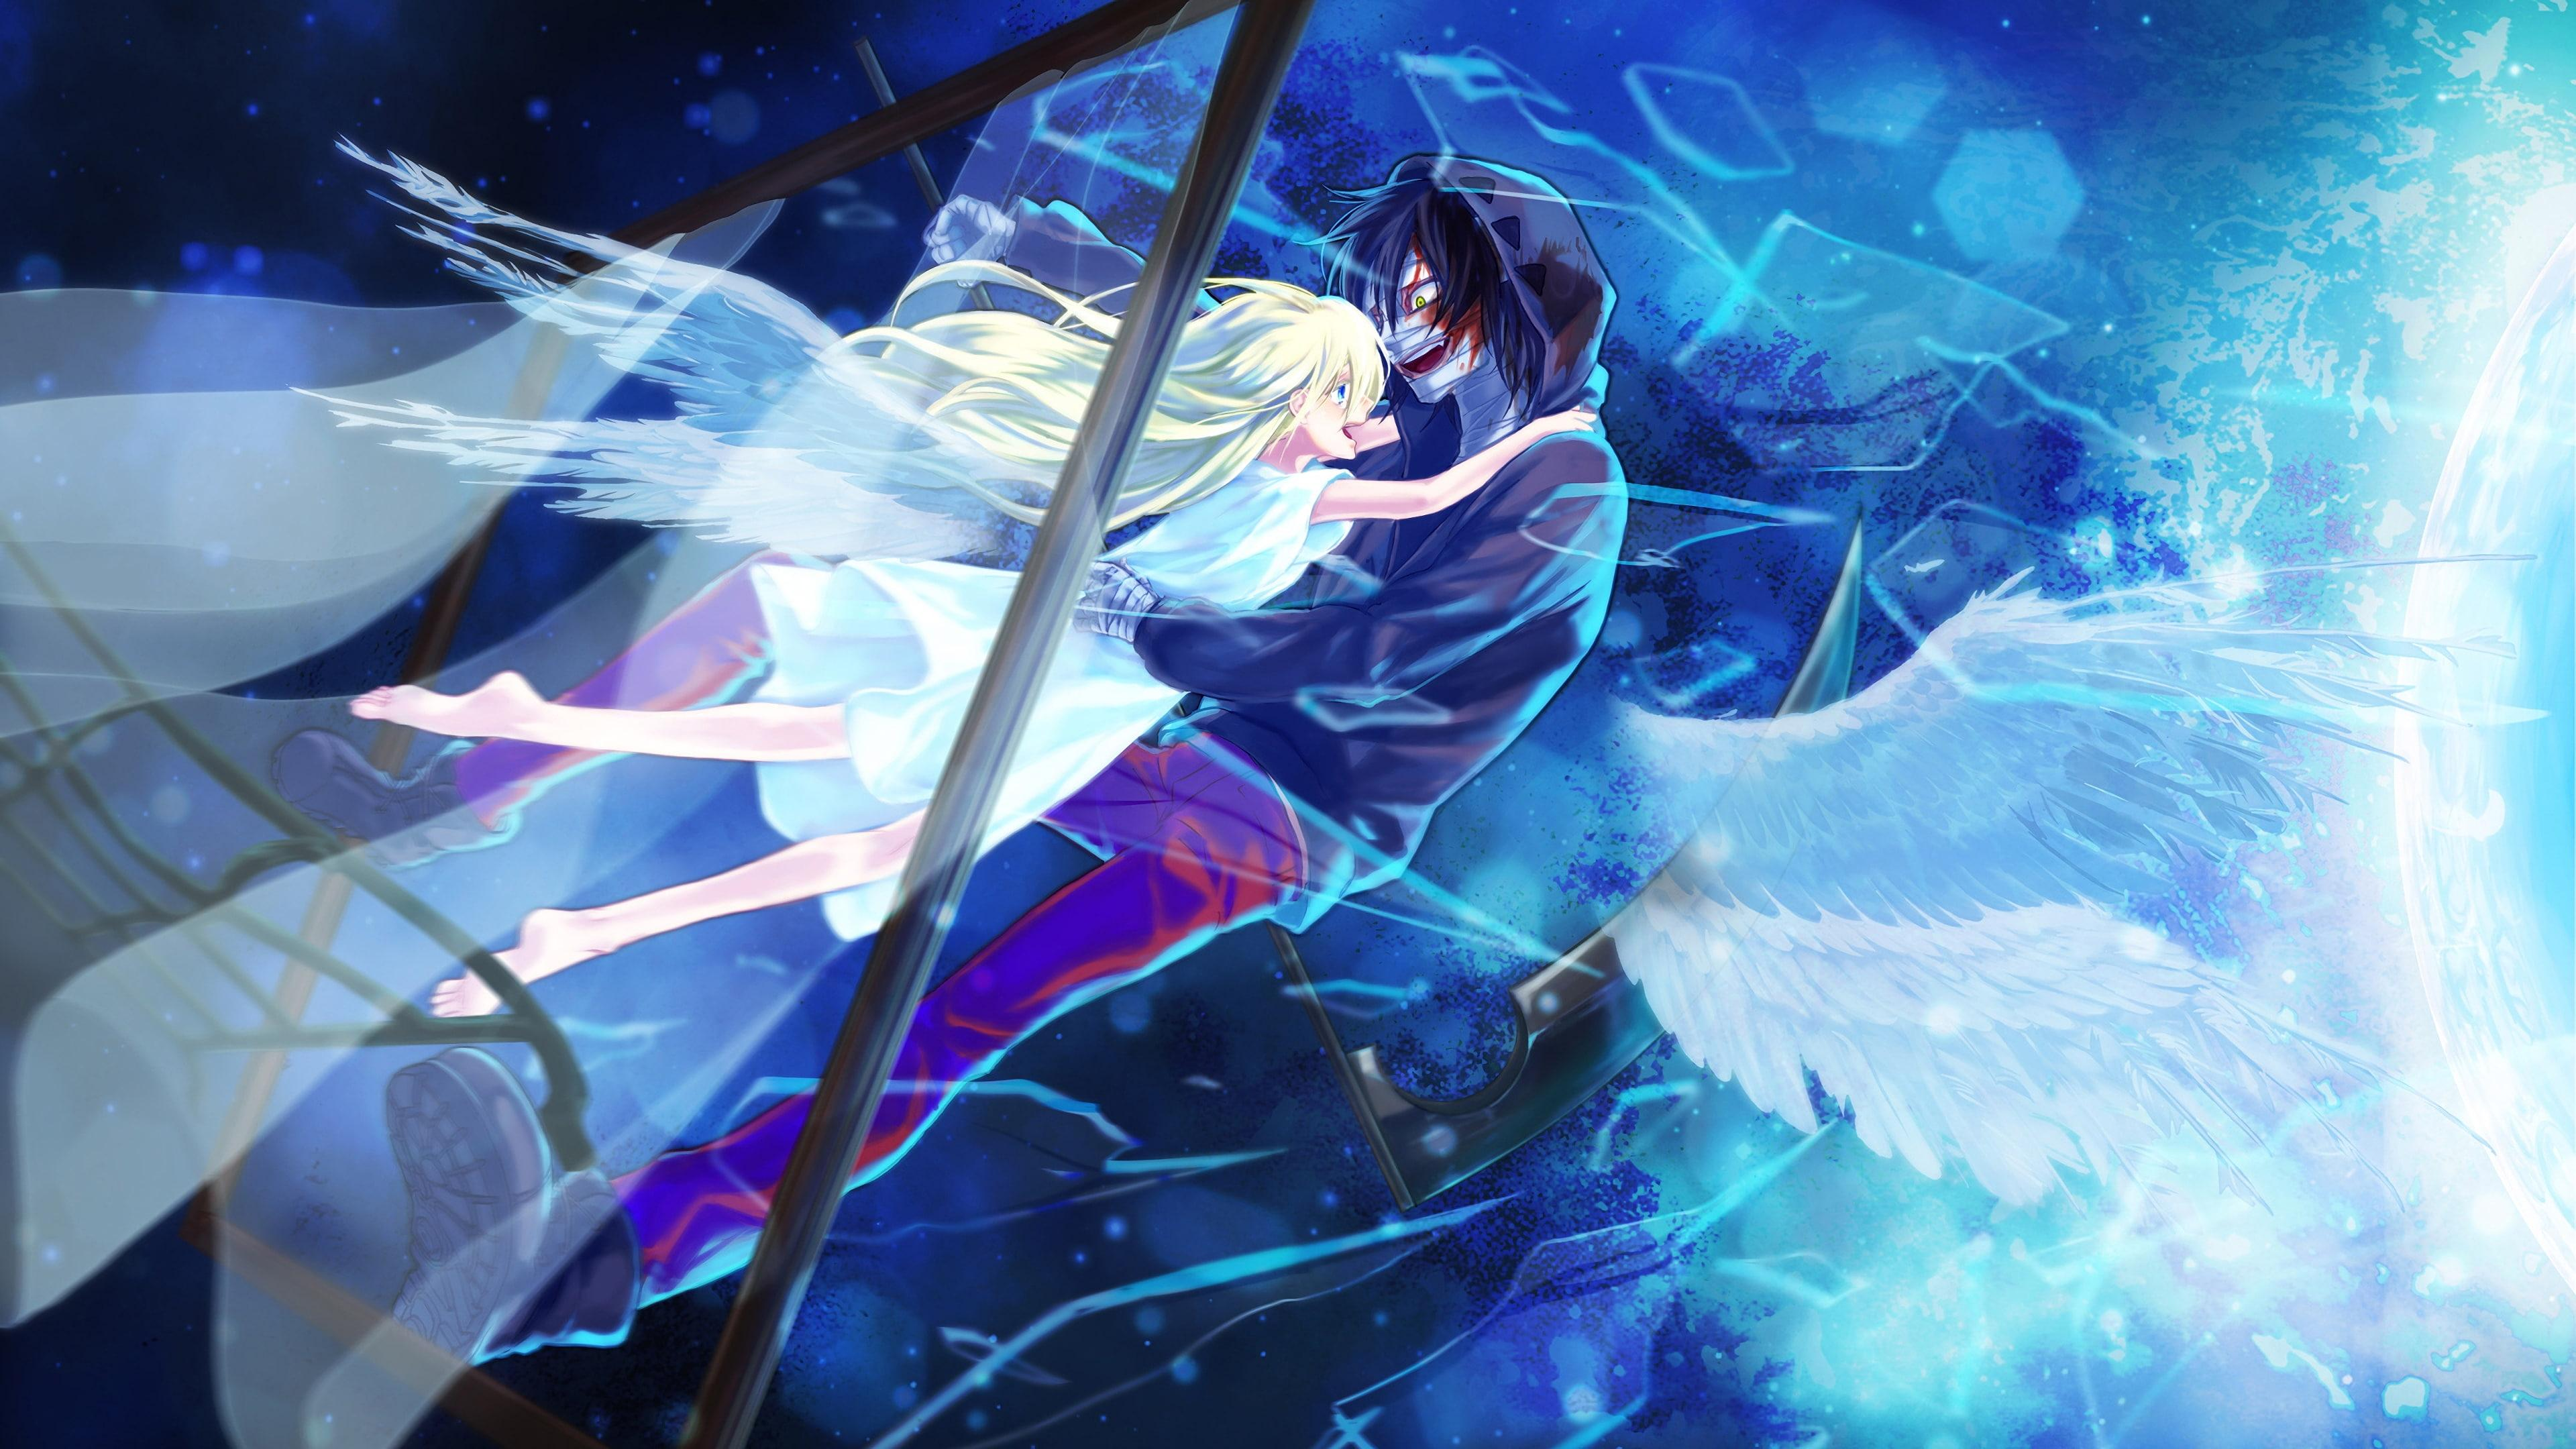 Angels Of Death Anime Wallpapers - Wallpaper Cave